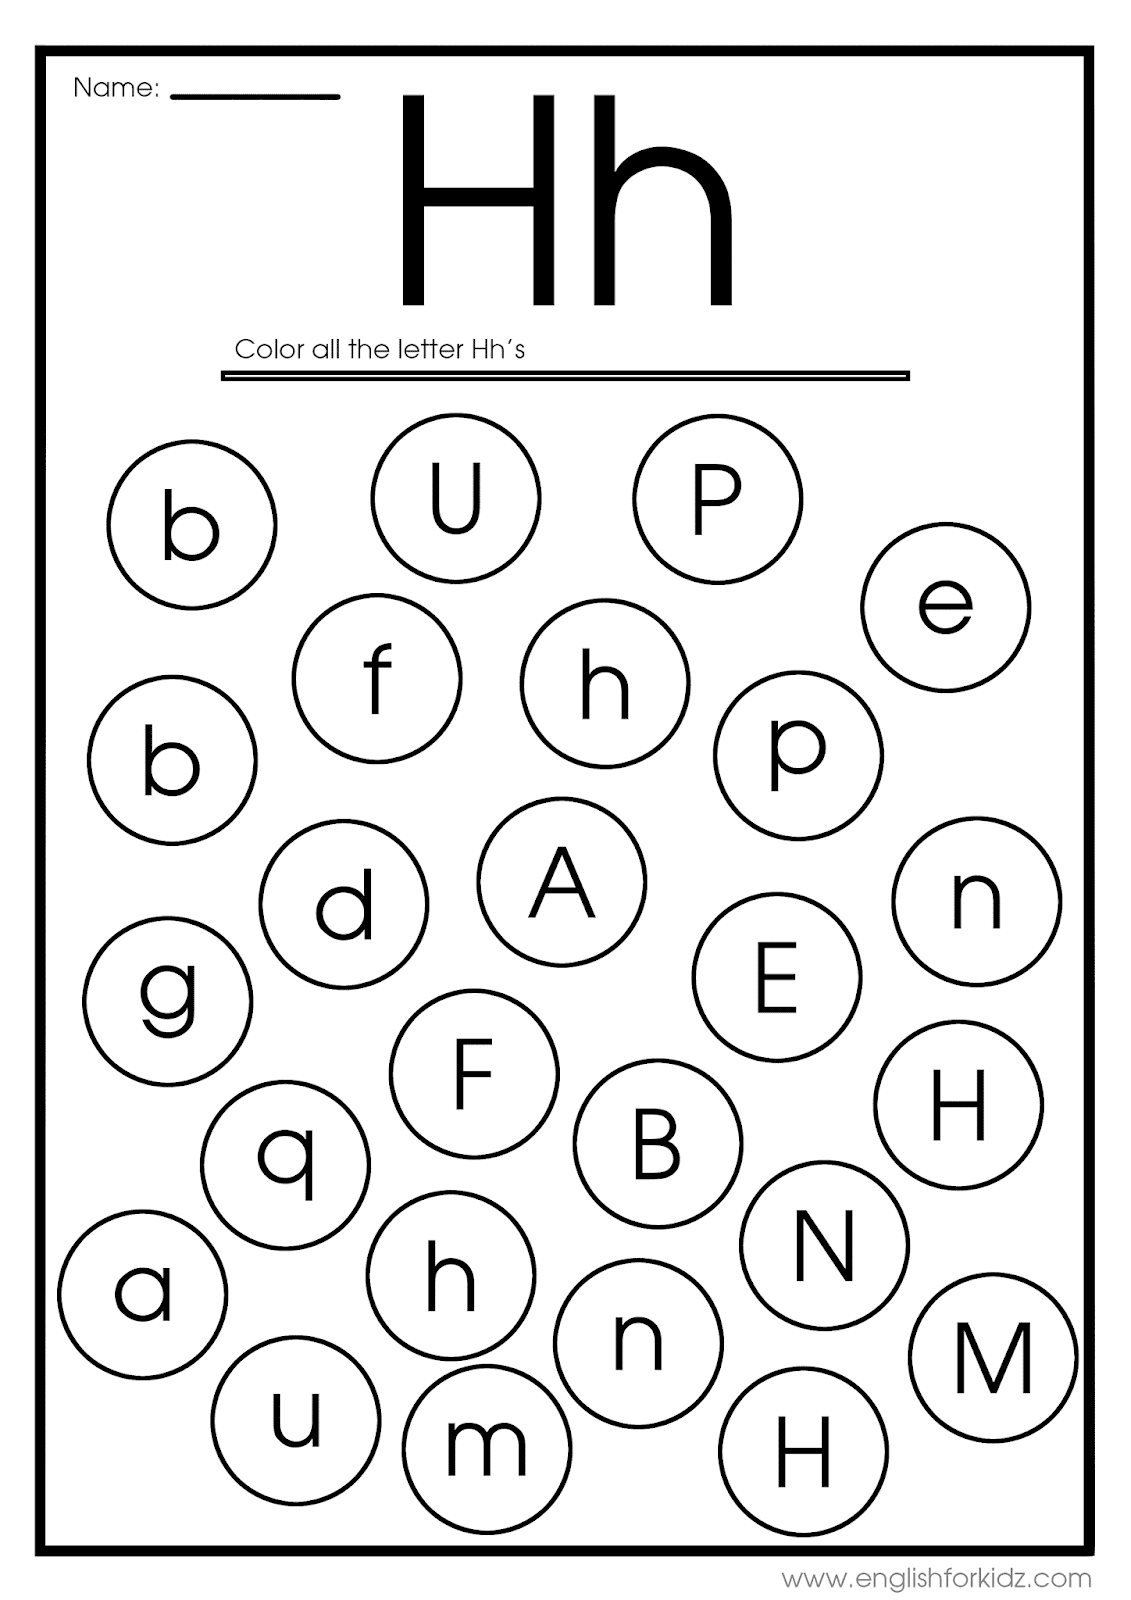 coloring worksheet letter h things that start with the letter h coloring pages worksheet letter coloring h